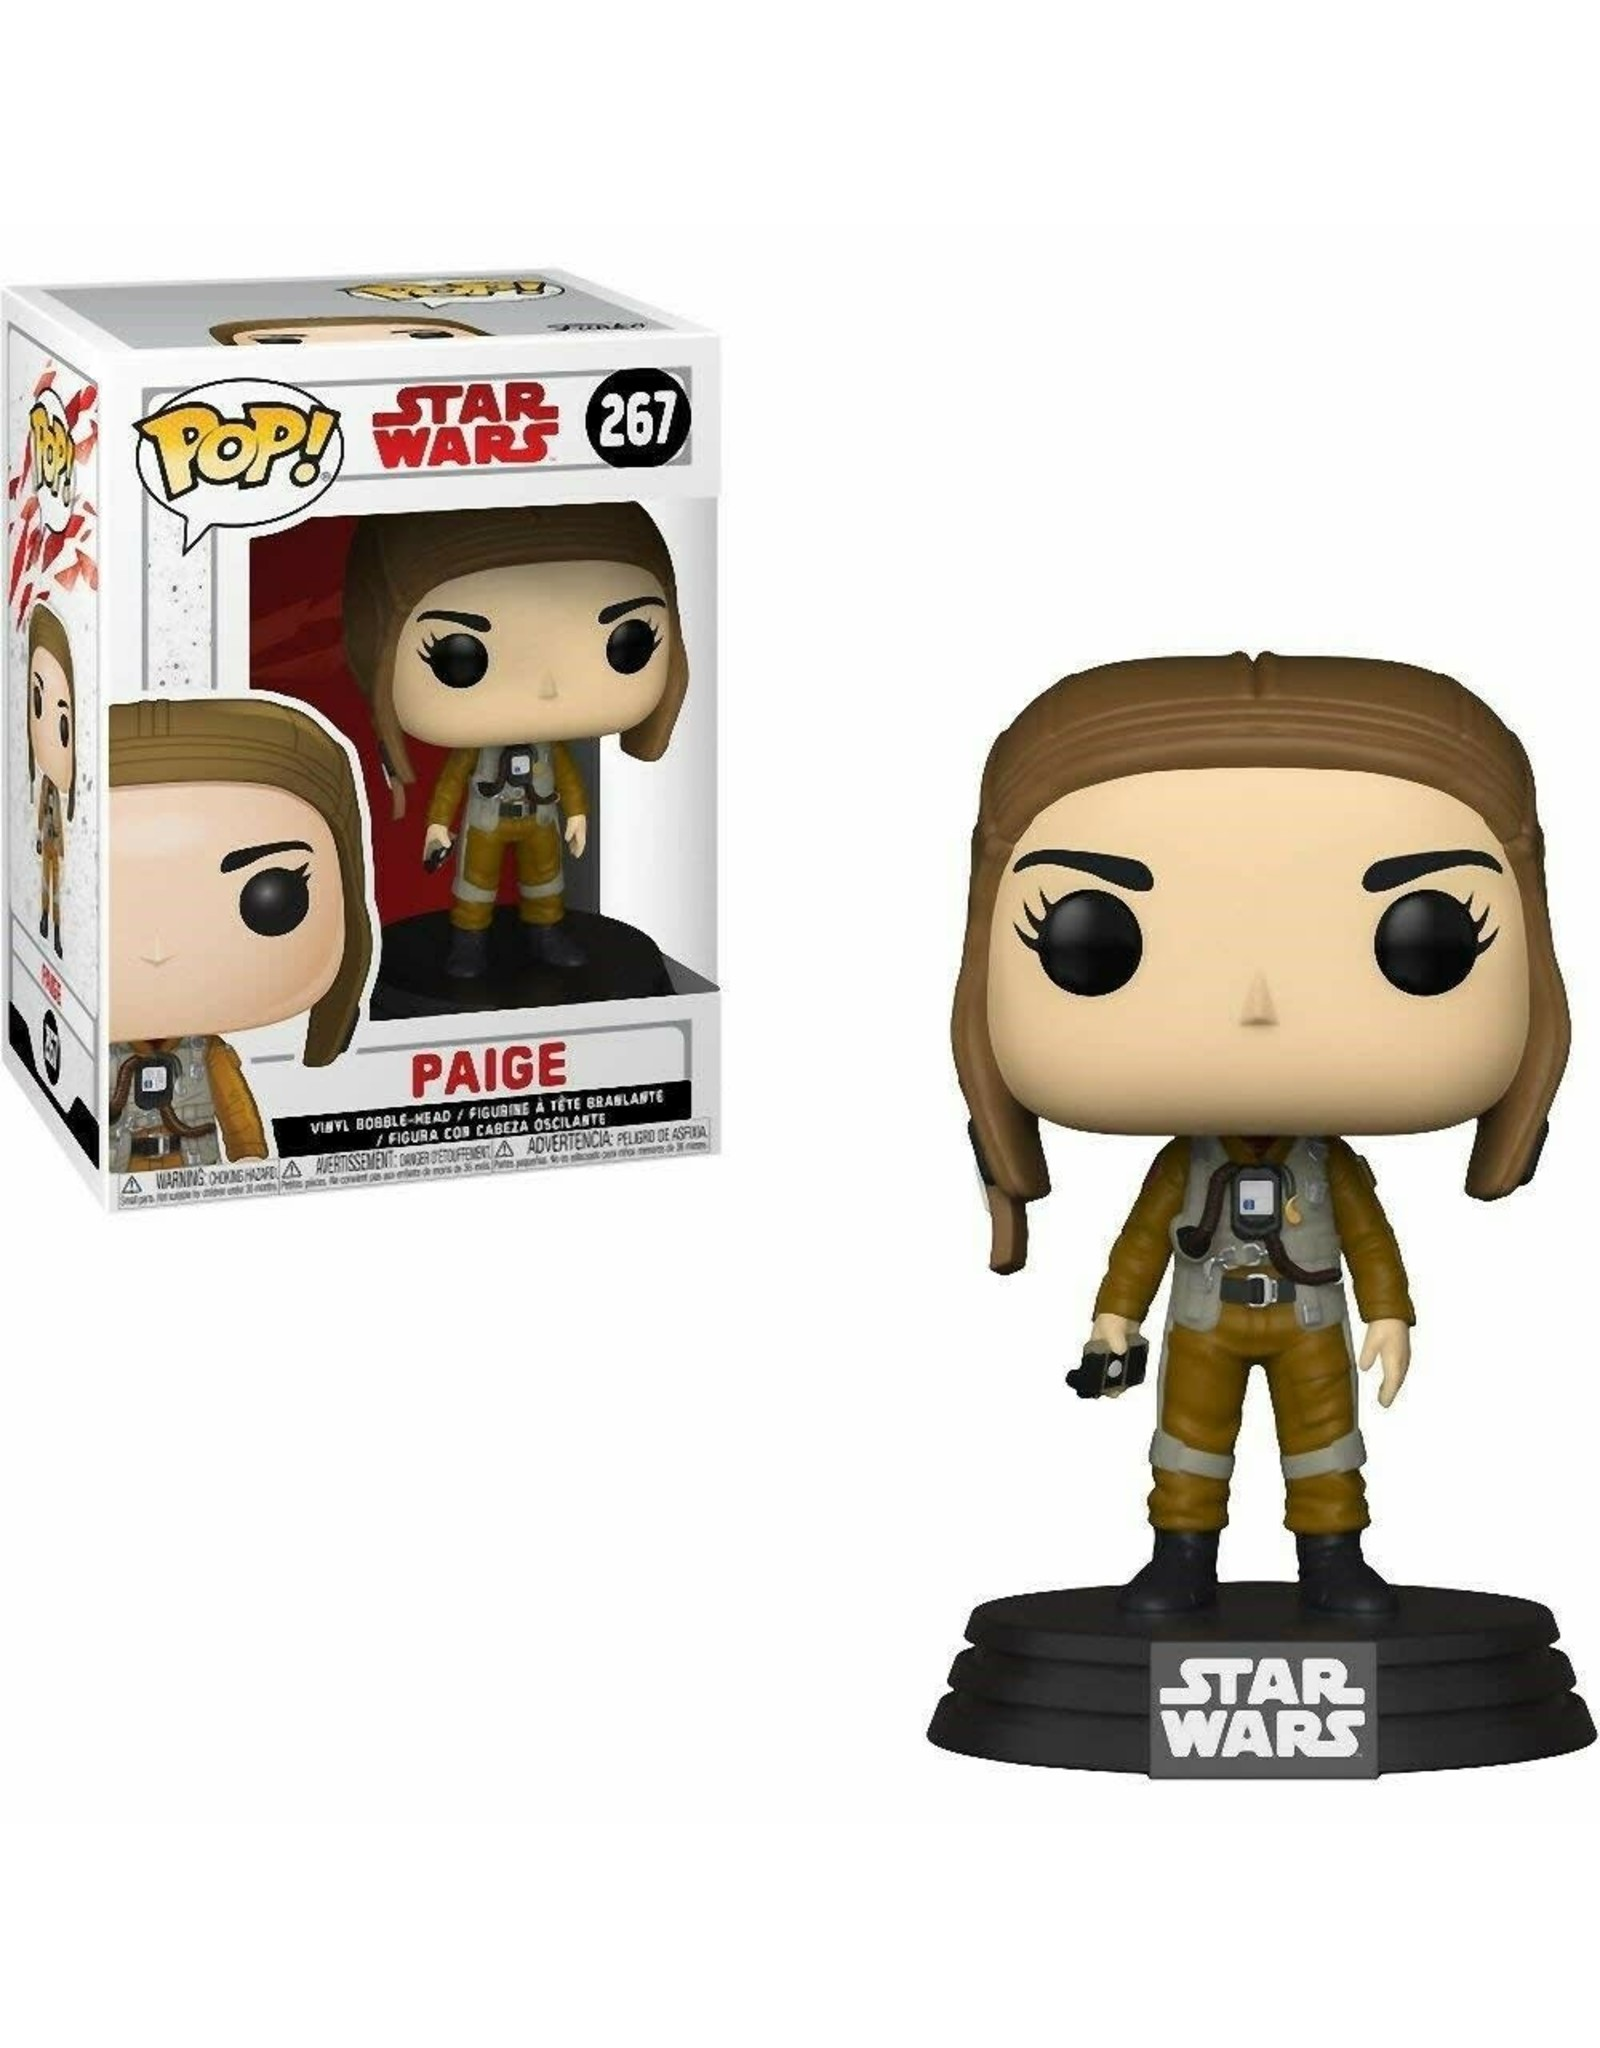 STAR WARS - Bobble Head POP N° 267 - Paige